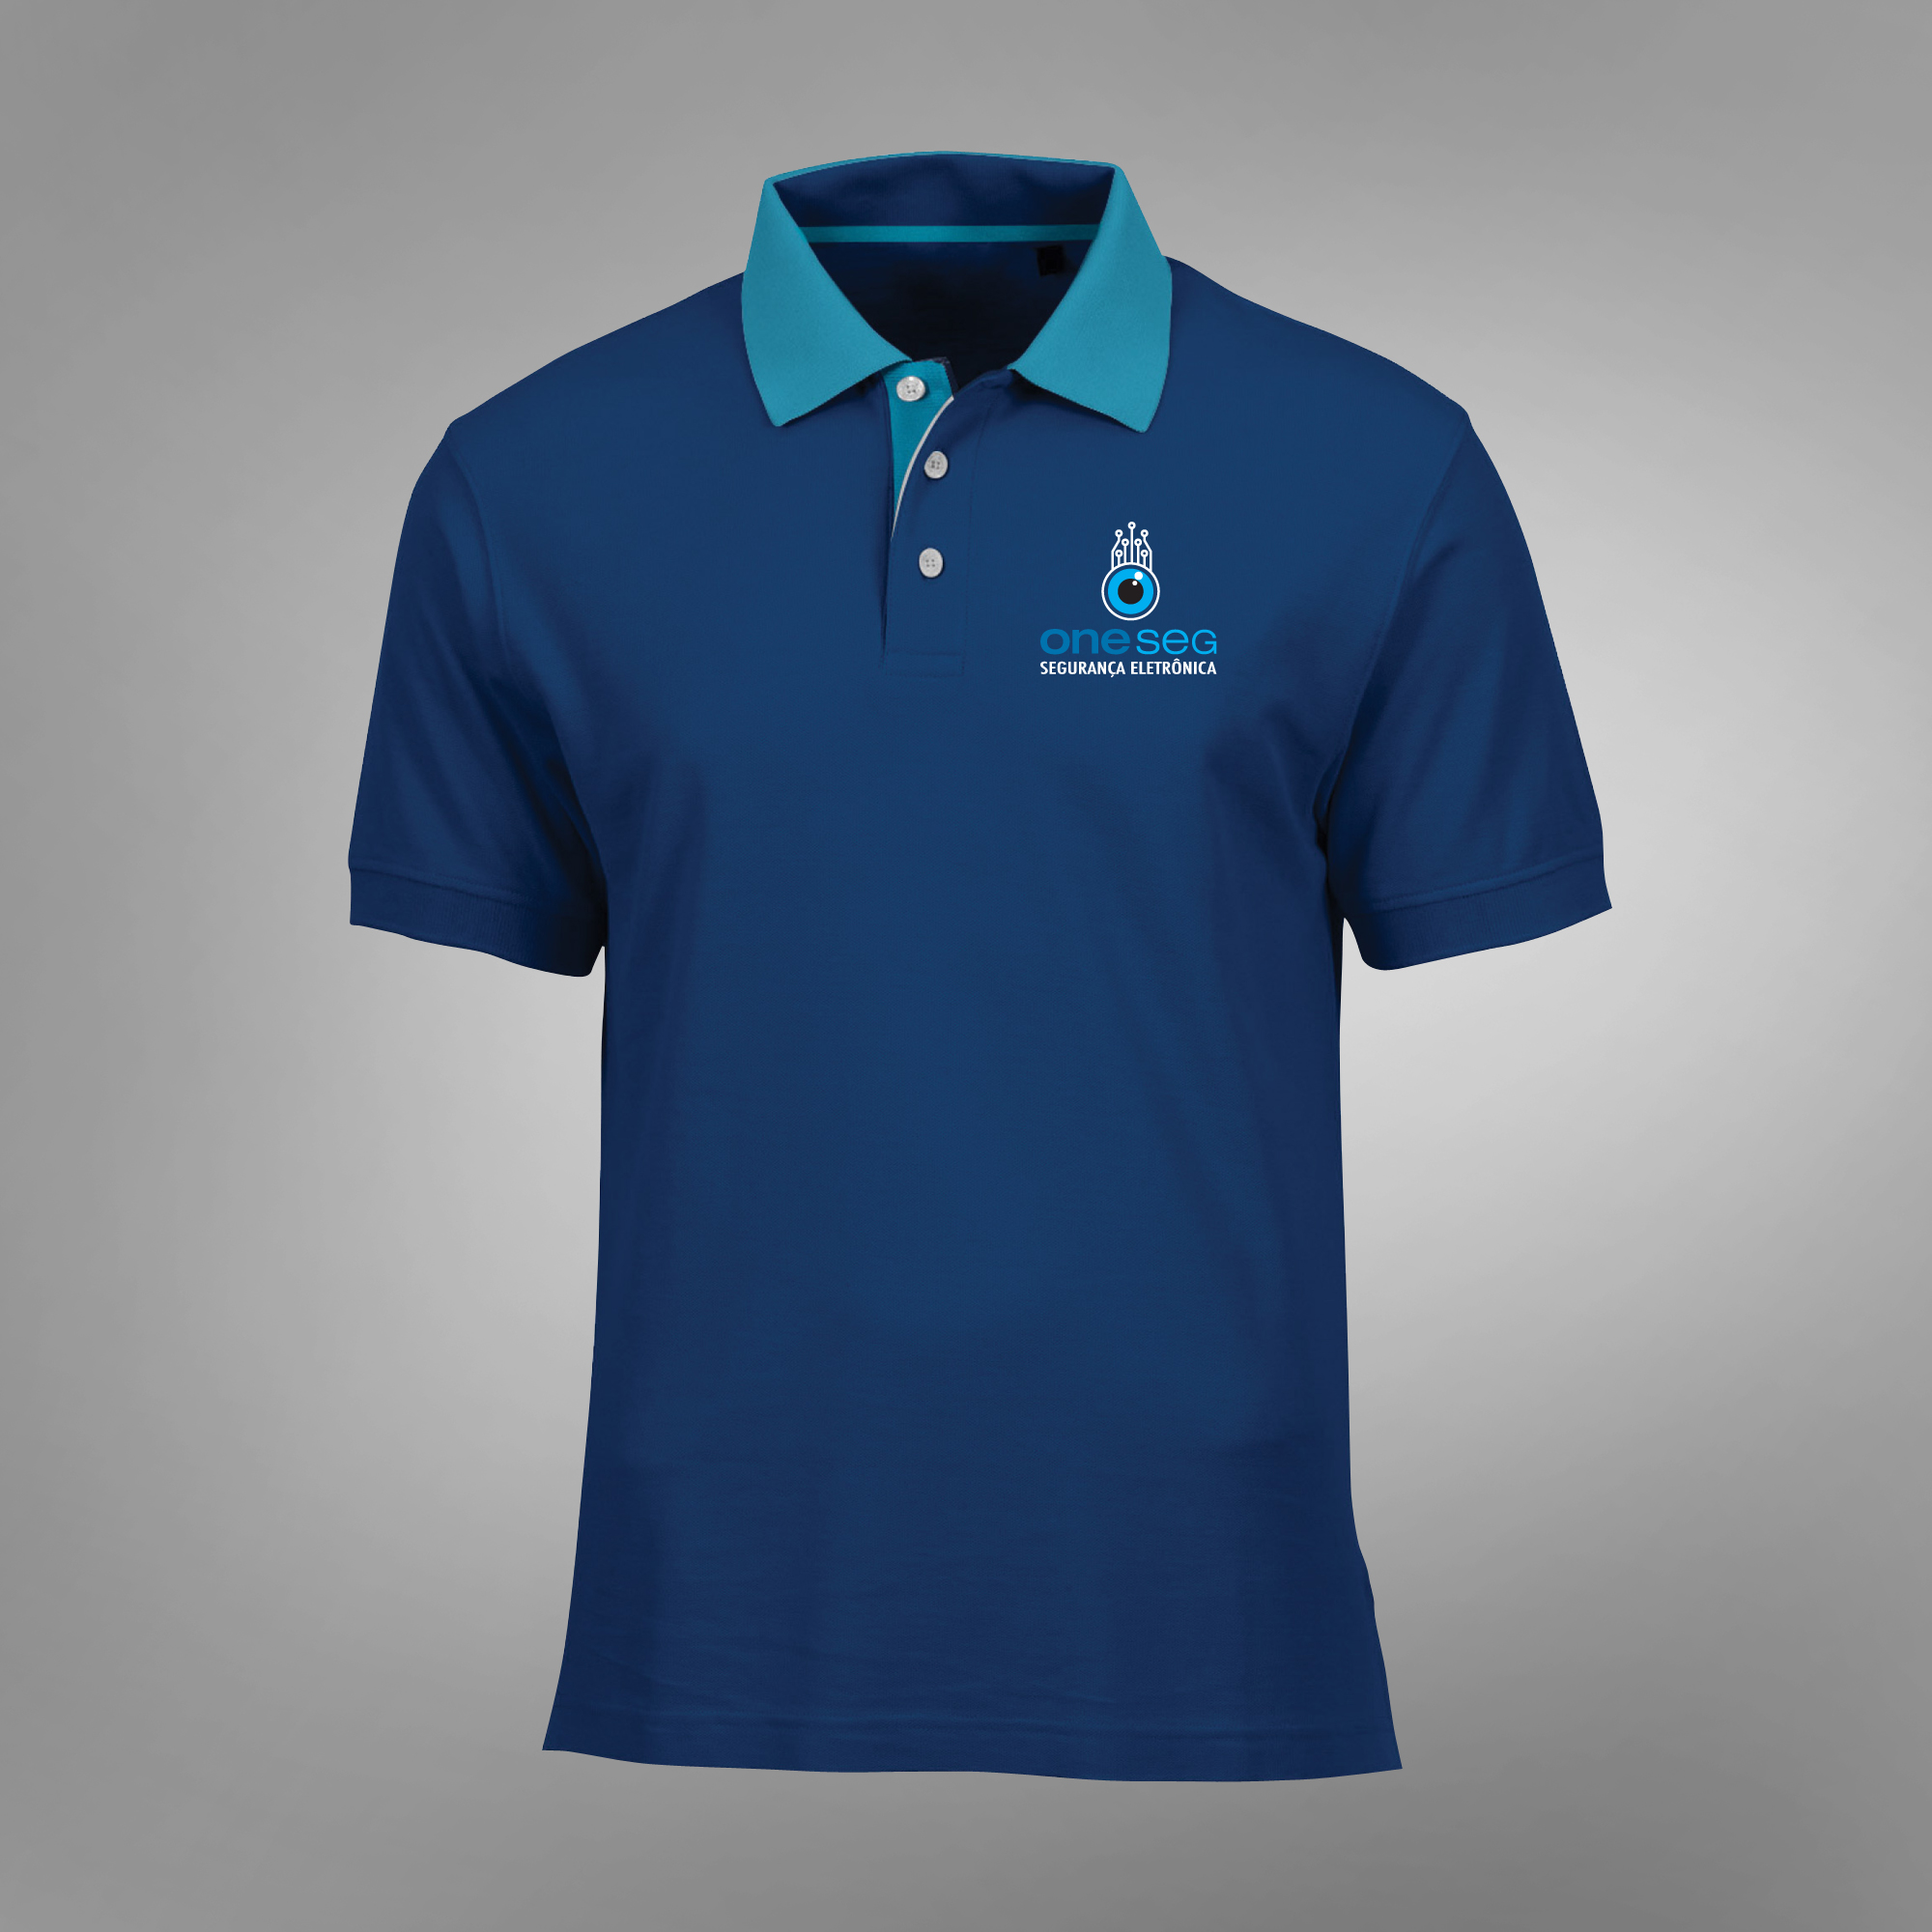 Camiseta-Polo-Azul1